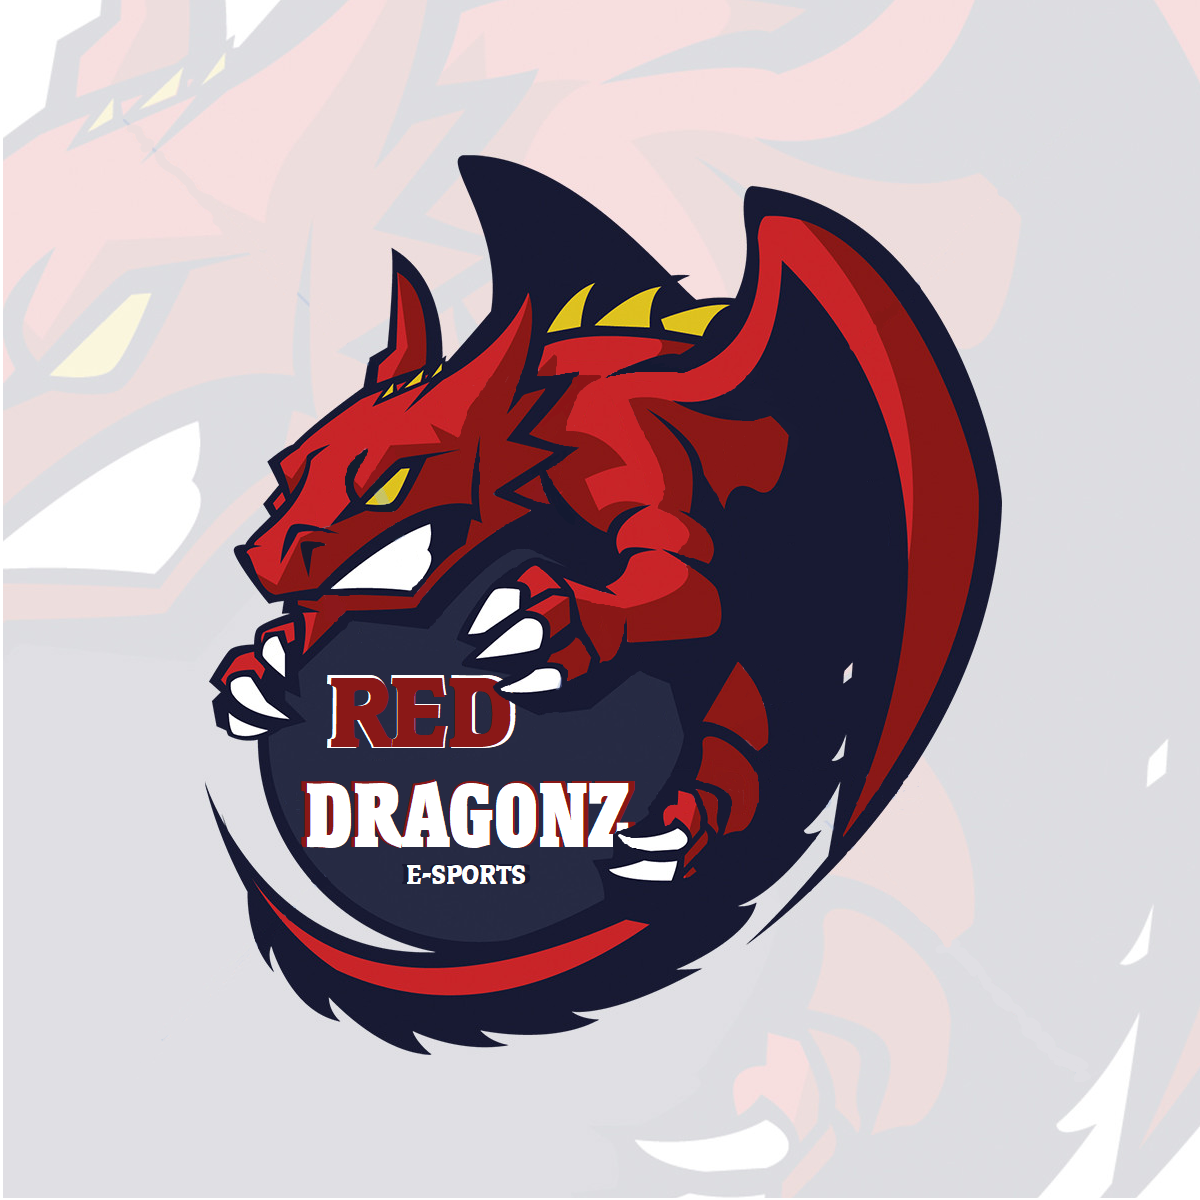 Red DragonZ